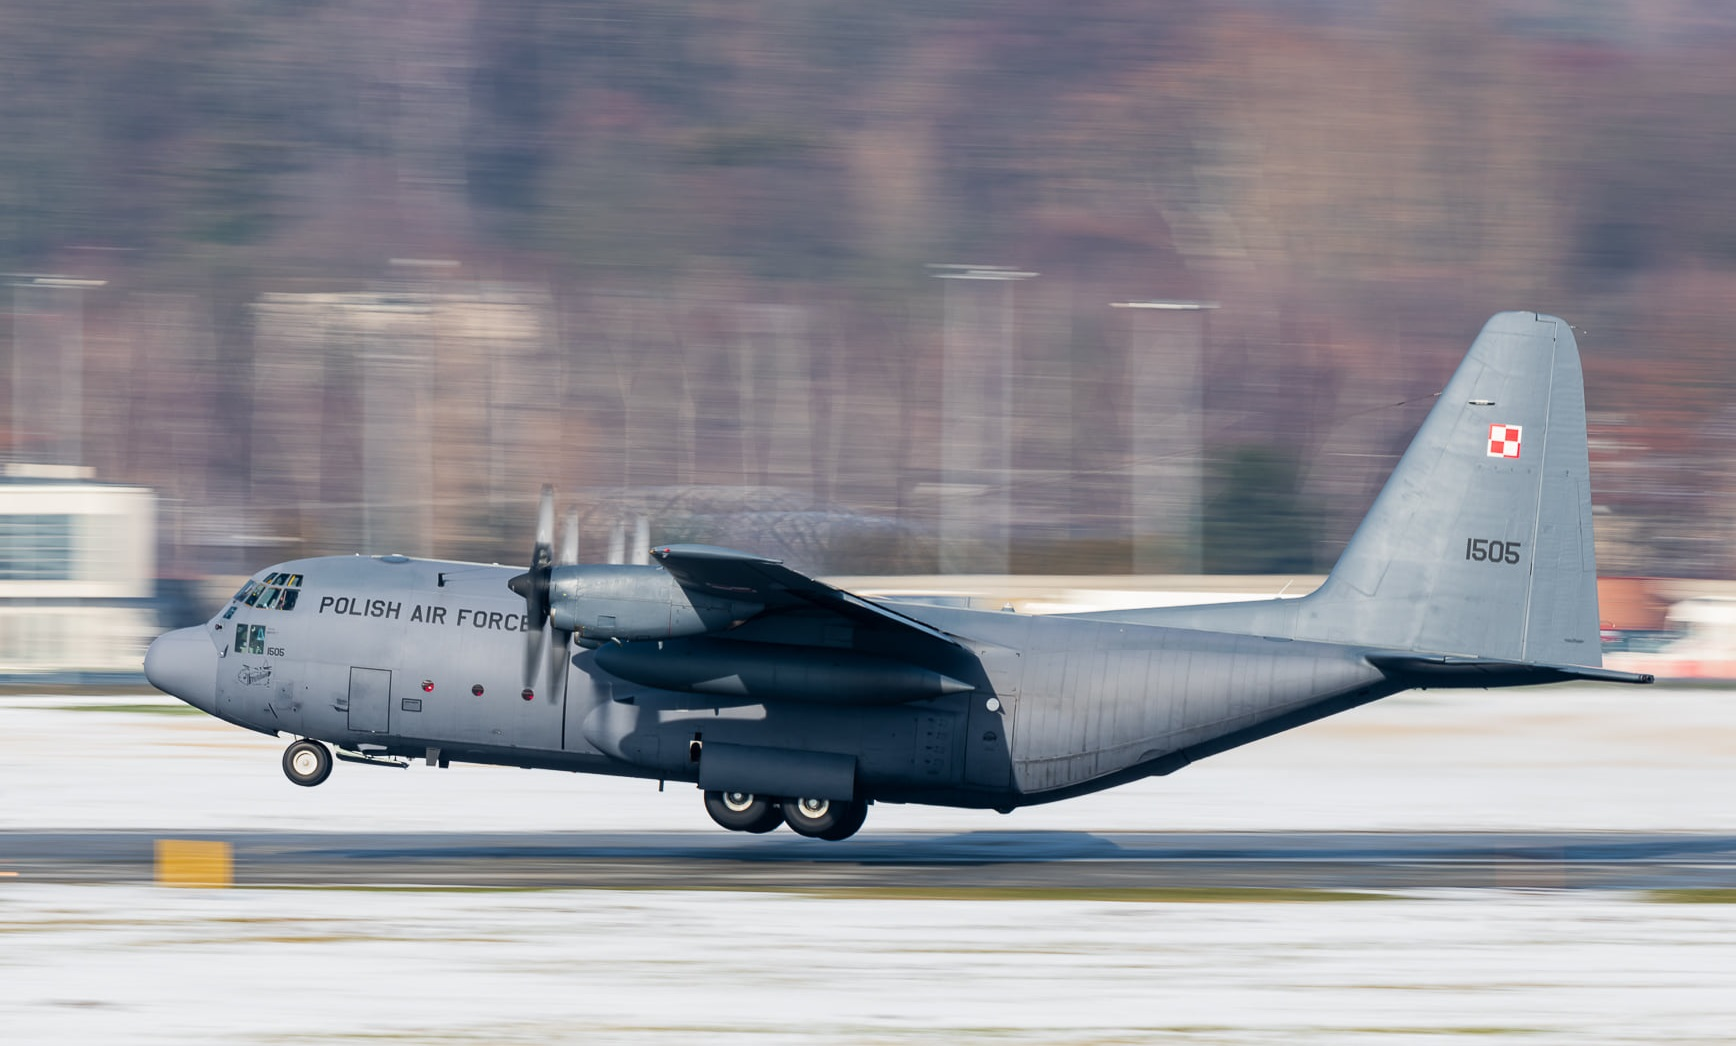 Poland inks deal with U.S. for 5 C-130H Hercules aircraft